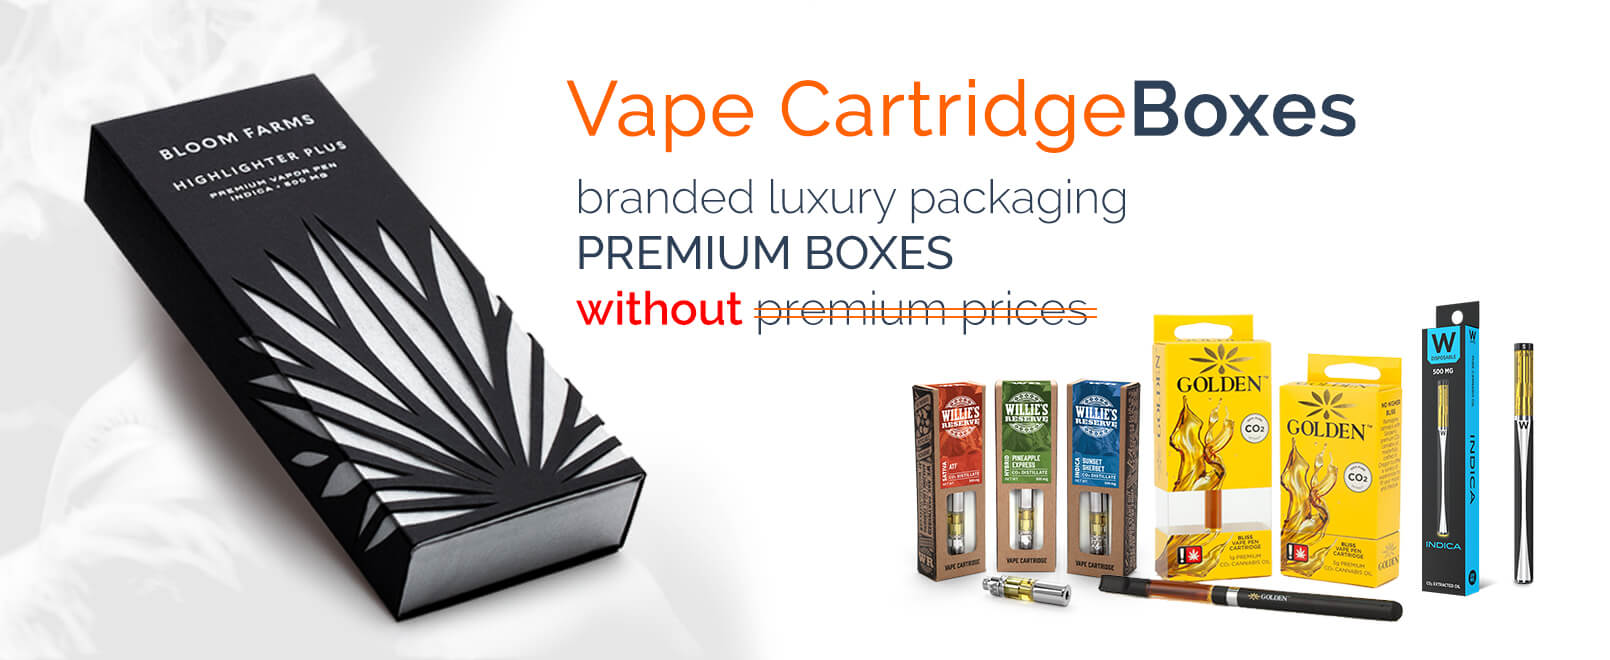 How To Win Buyers And Influence Sales With Vape Boxes?